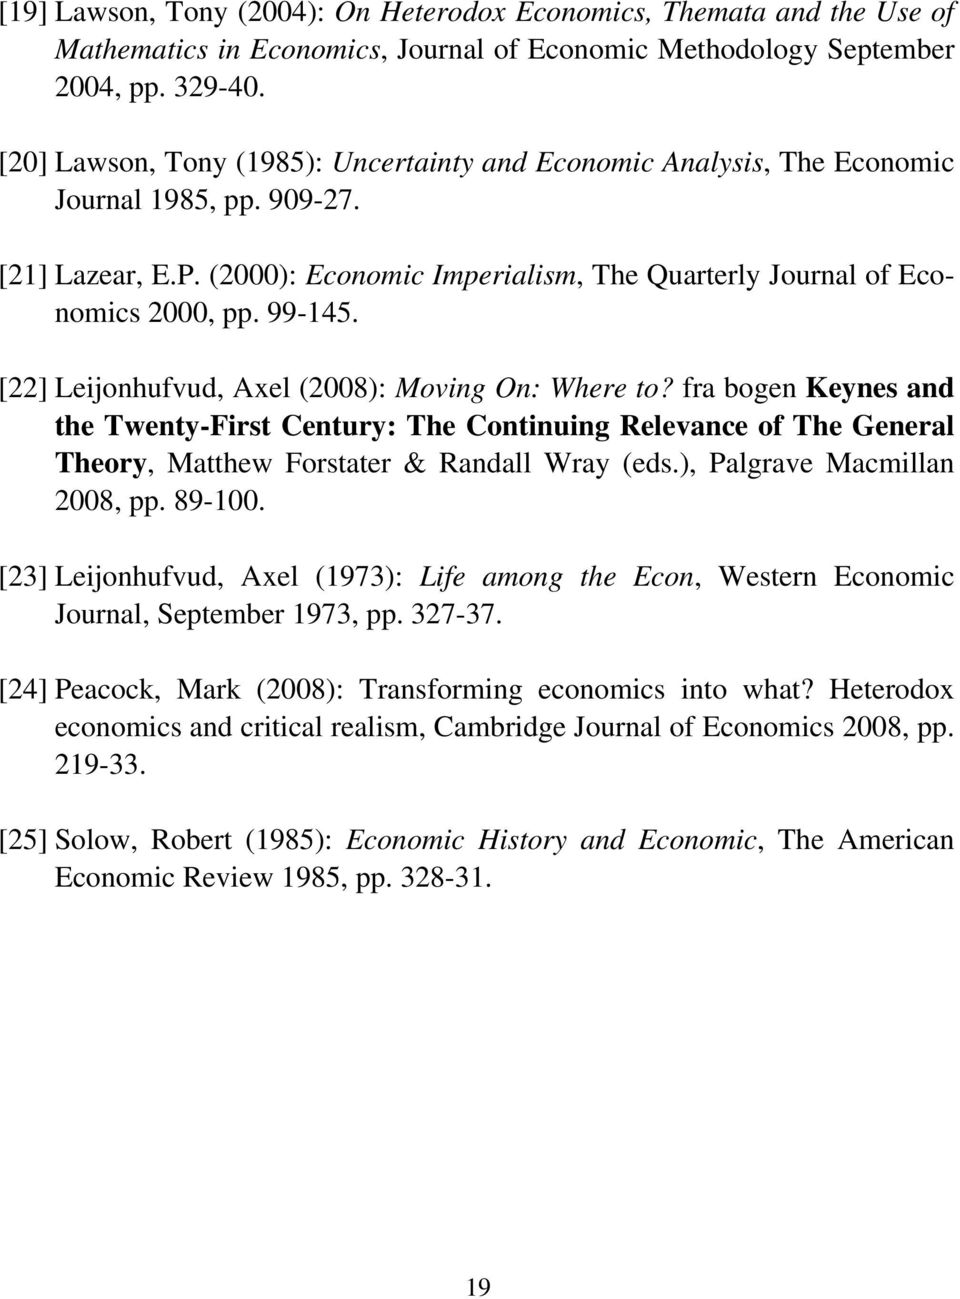 [22] Leijonhufvud, Axel (2008): Moving On: Where to? fra bogen Keynes and the Twenty-First Century: The Continuing Relevance of The General Theory, Matthew Forstater & Randall Wray (eds.